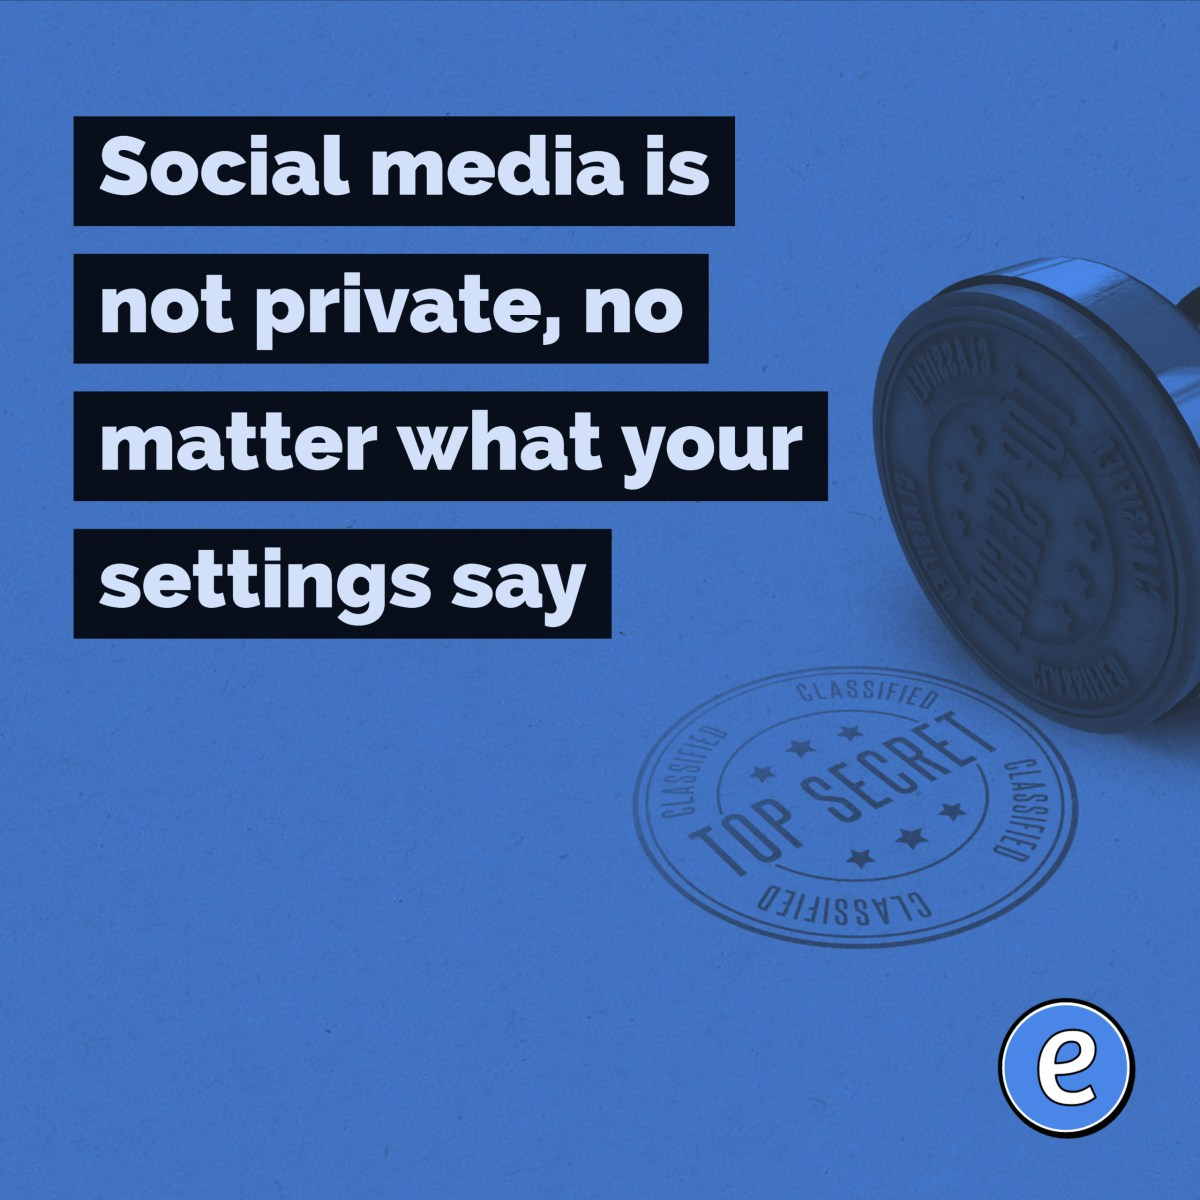 Social media is not private, no matter what your settings say